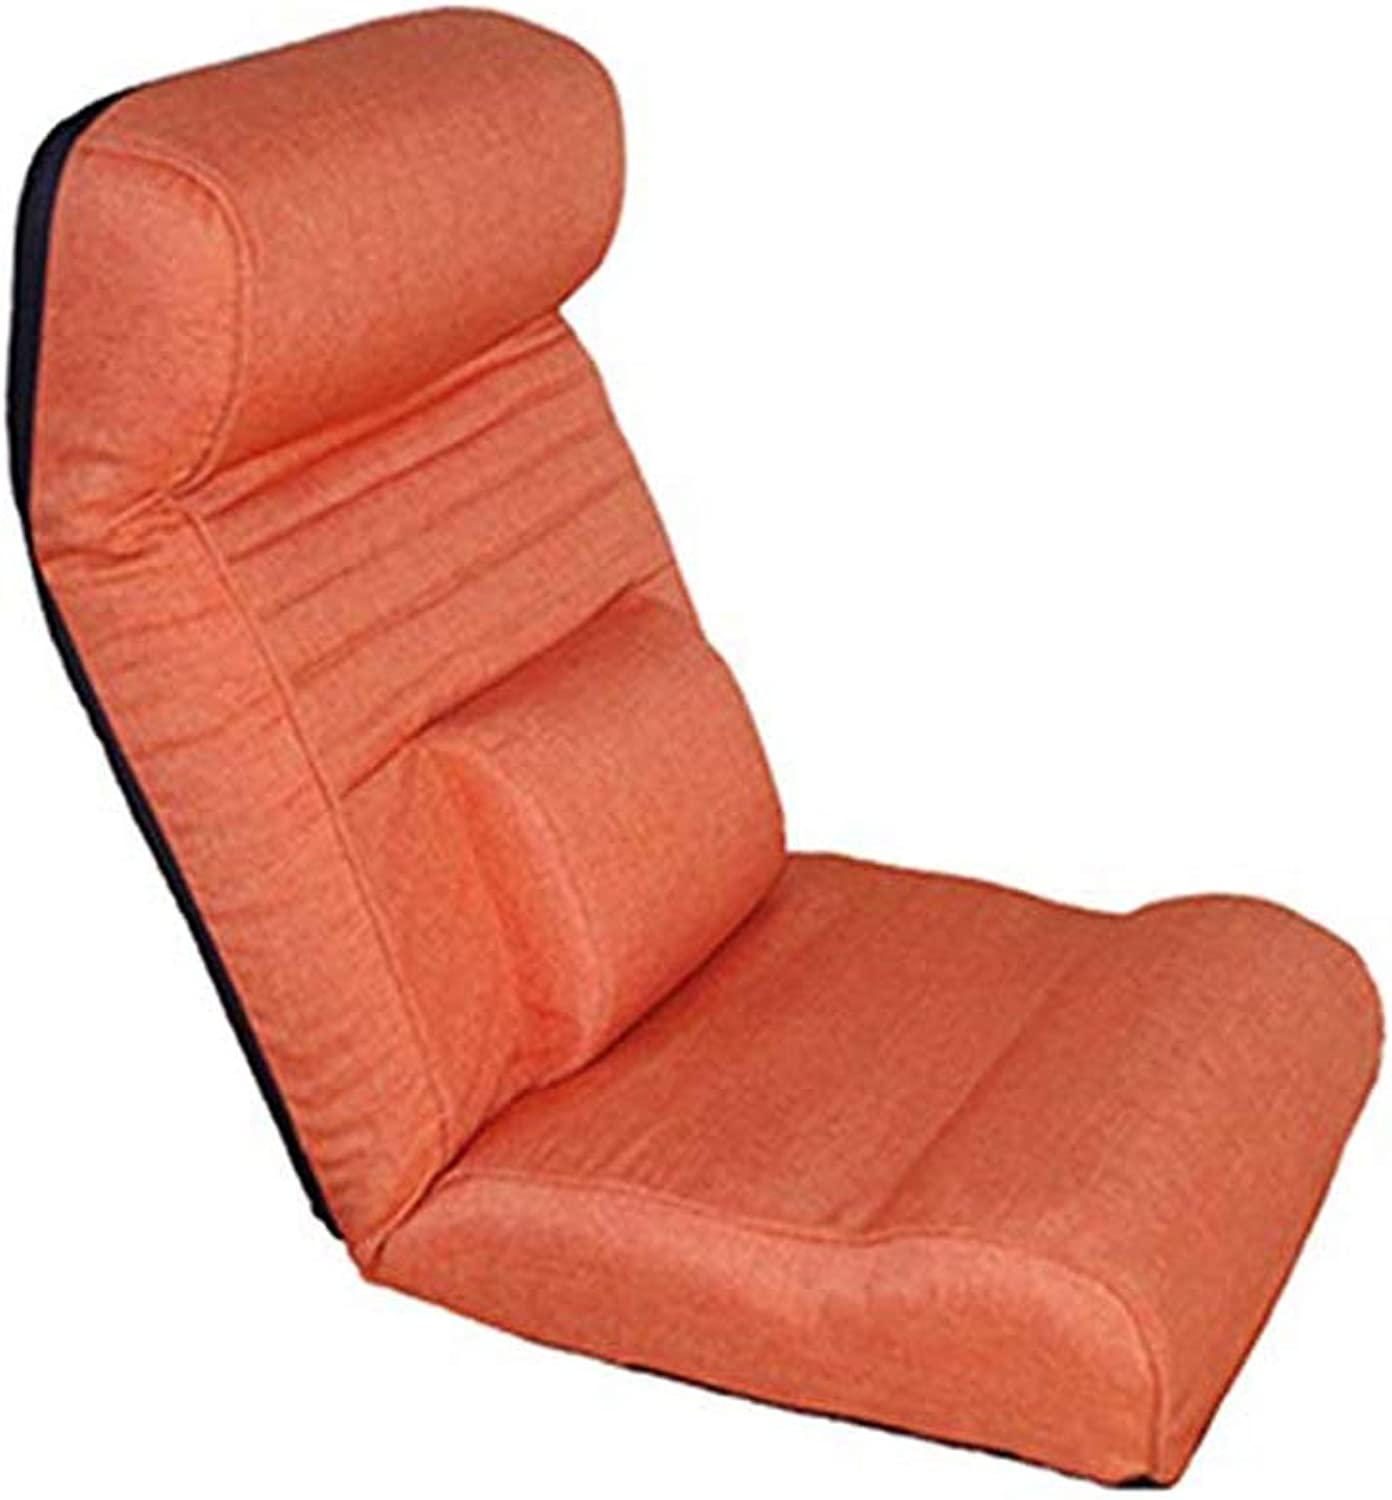 Meditation Chair, Creative Multifunctional Floor Chair Lazy Couch Chair Single Foldable Bed Chair Japanese Style Washable Leisure Chair (color   orange)